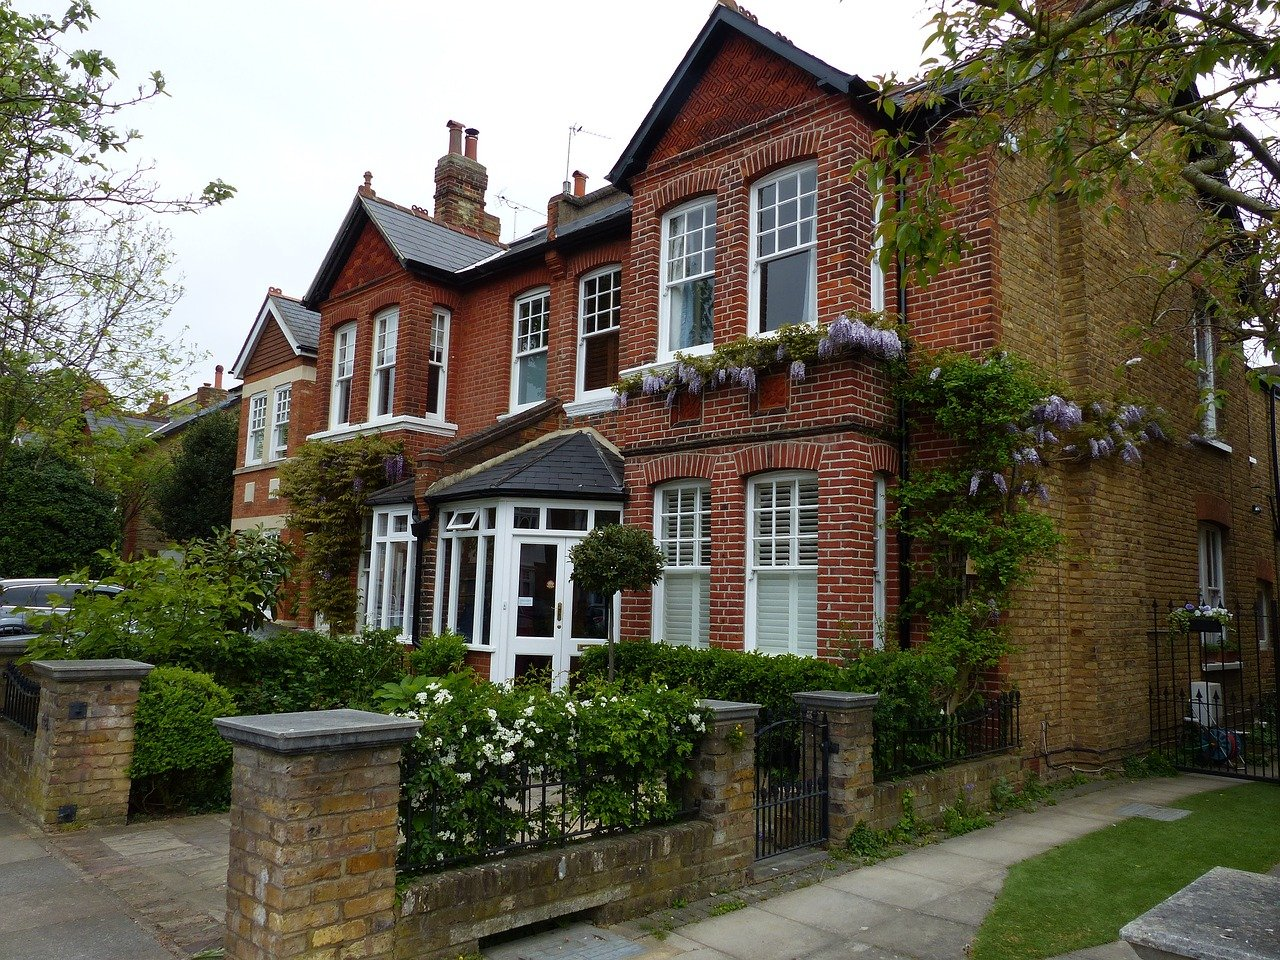 Victorian-era house with red-brick facade.